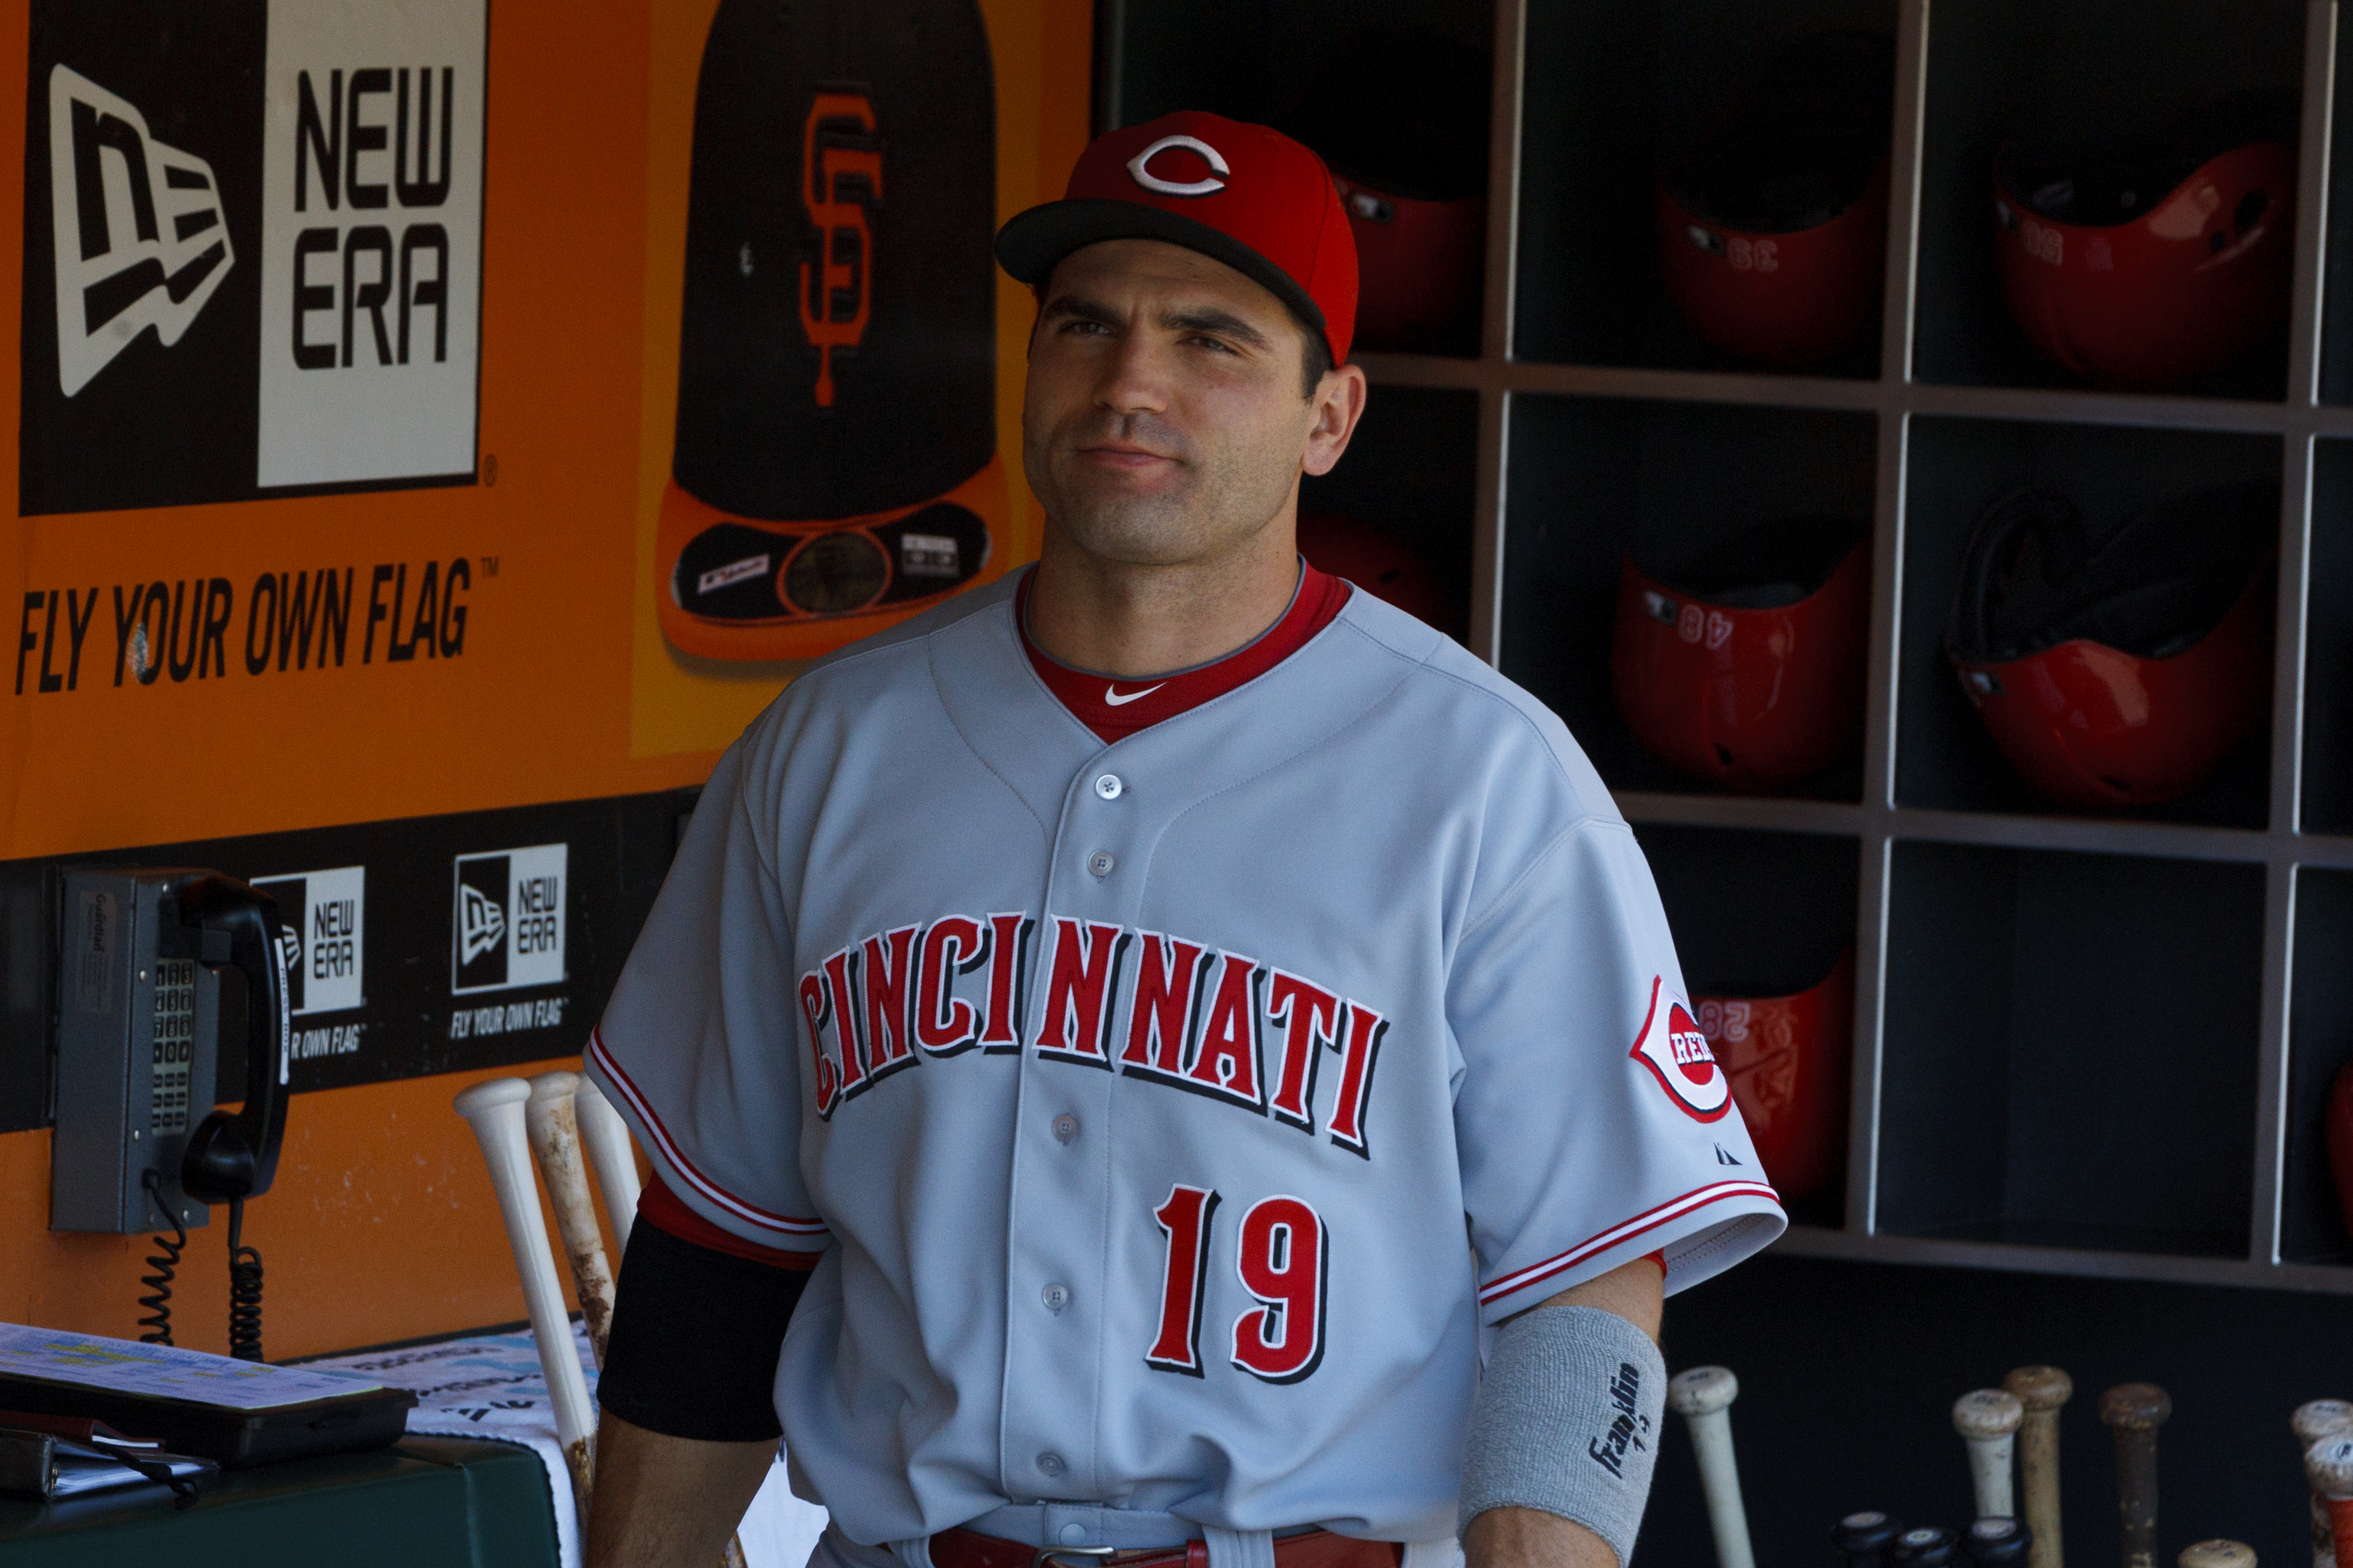 Joey Votto was a late scratch Sunday. He has one hit in his past 11 at-bats and is 6-for-37 over his last 11 games.